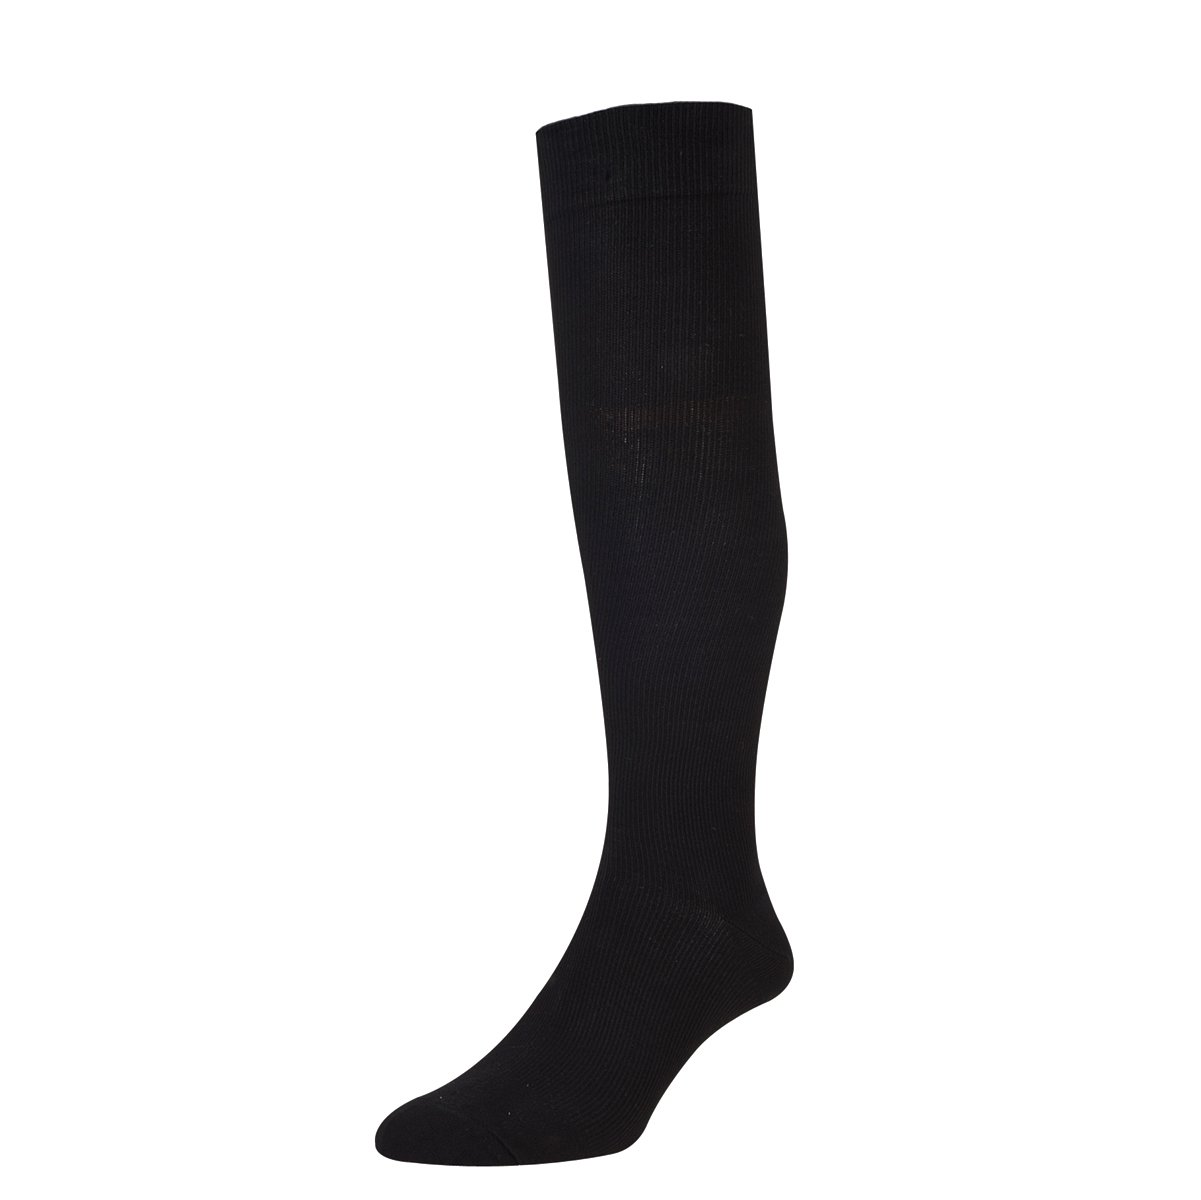 HJ747 | Flysafe Compression Travel Socks | DVT Prevention | Cotton Rich Cooling by HJ Hall